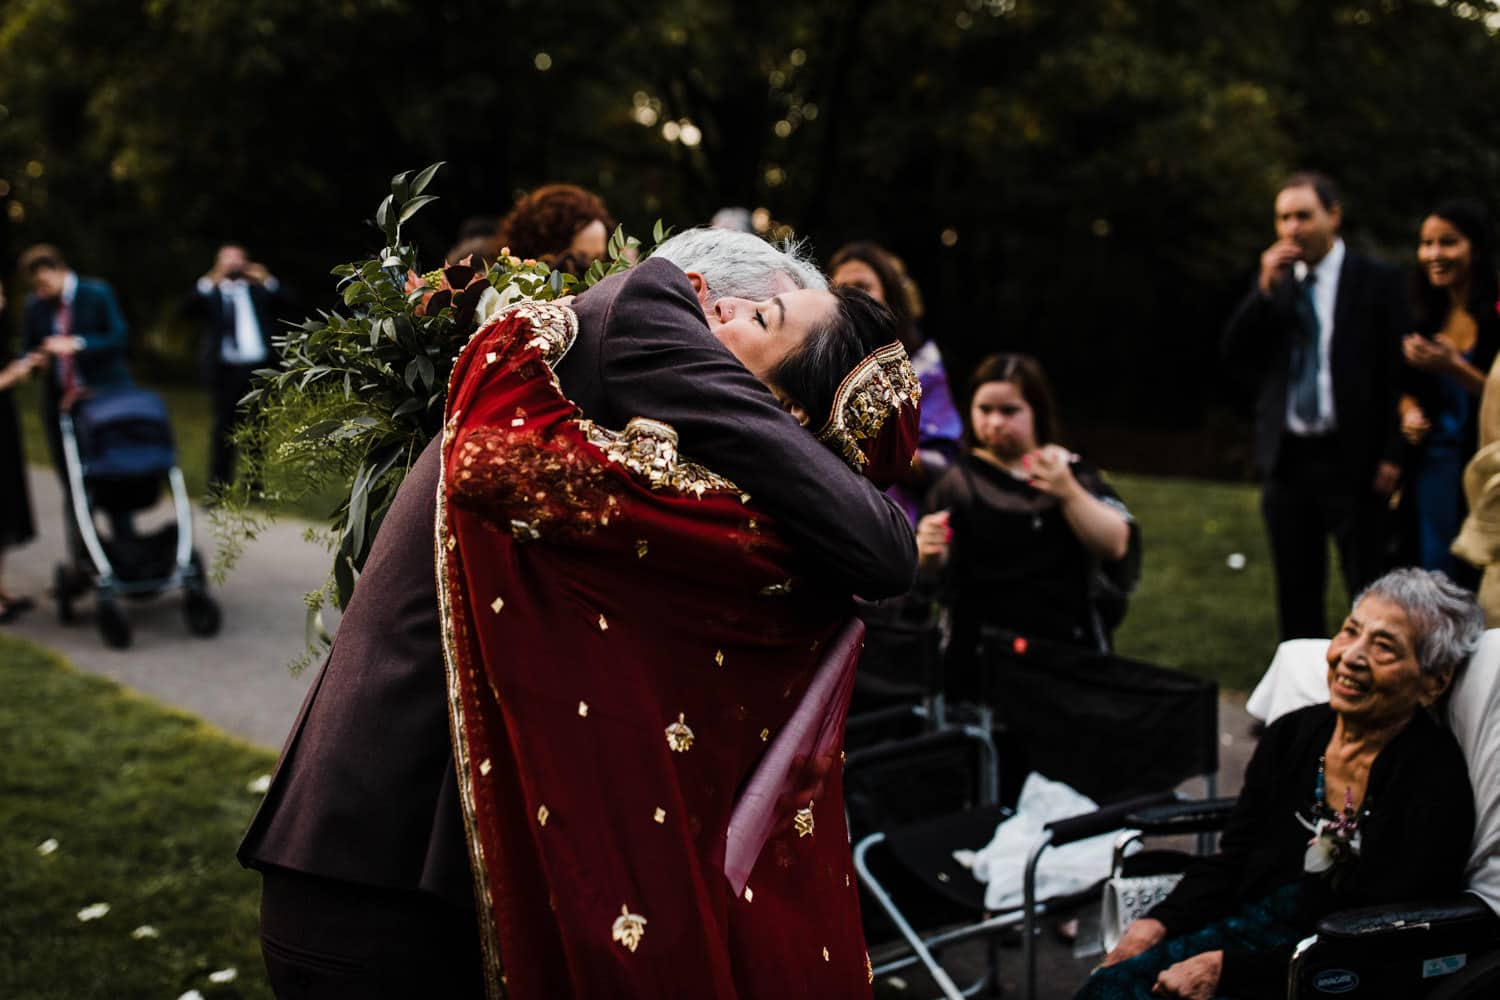 bride and groom hug one another after intimate outdoor ceremony